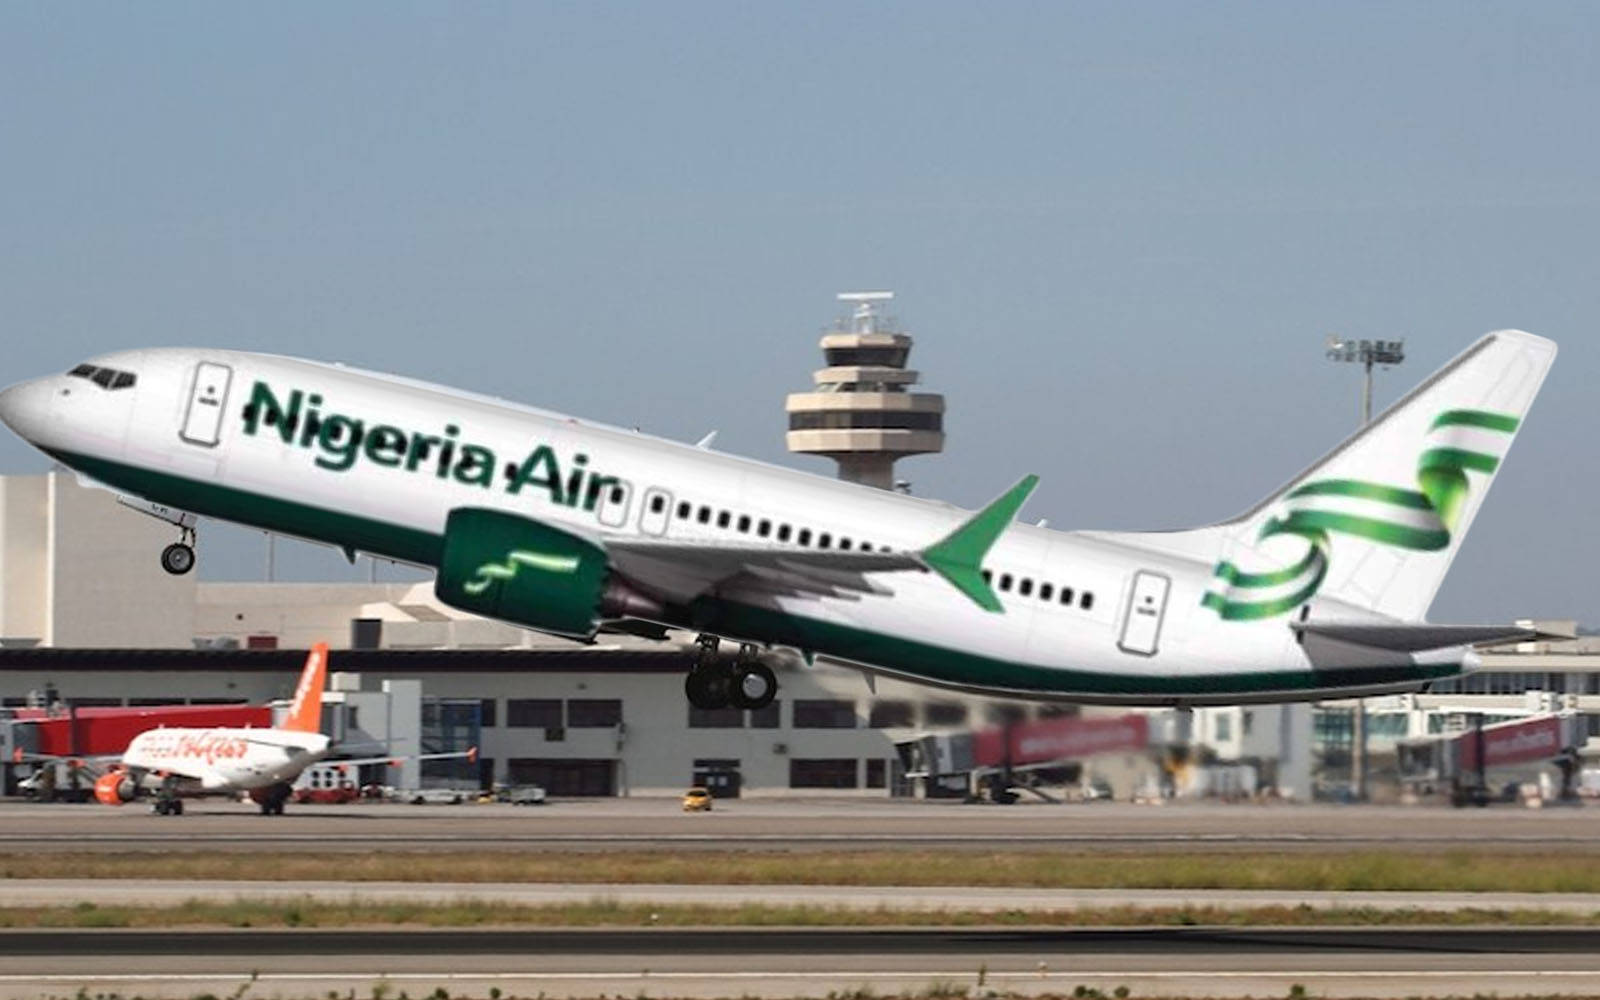 Sirika Announces Suspension of National Carrier